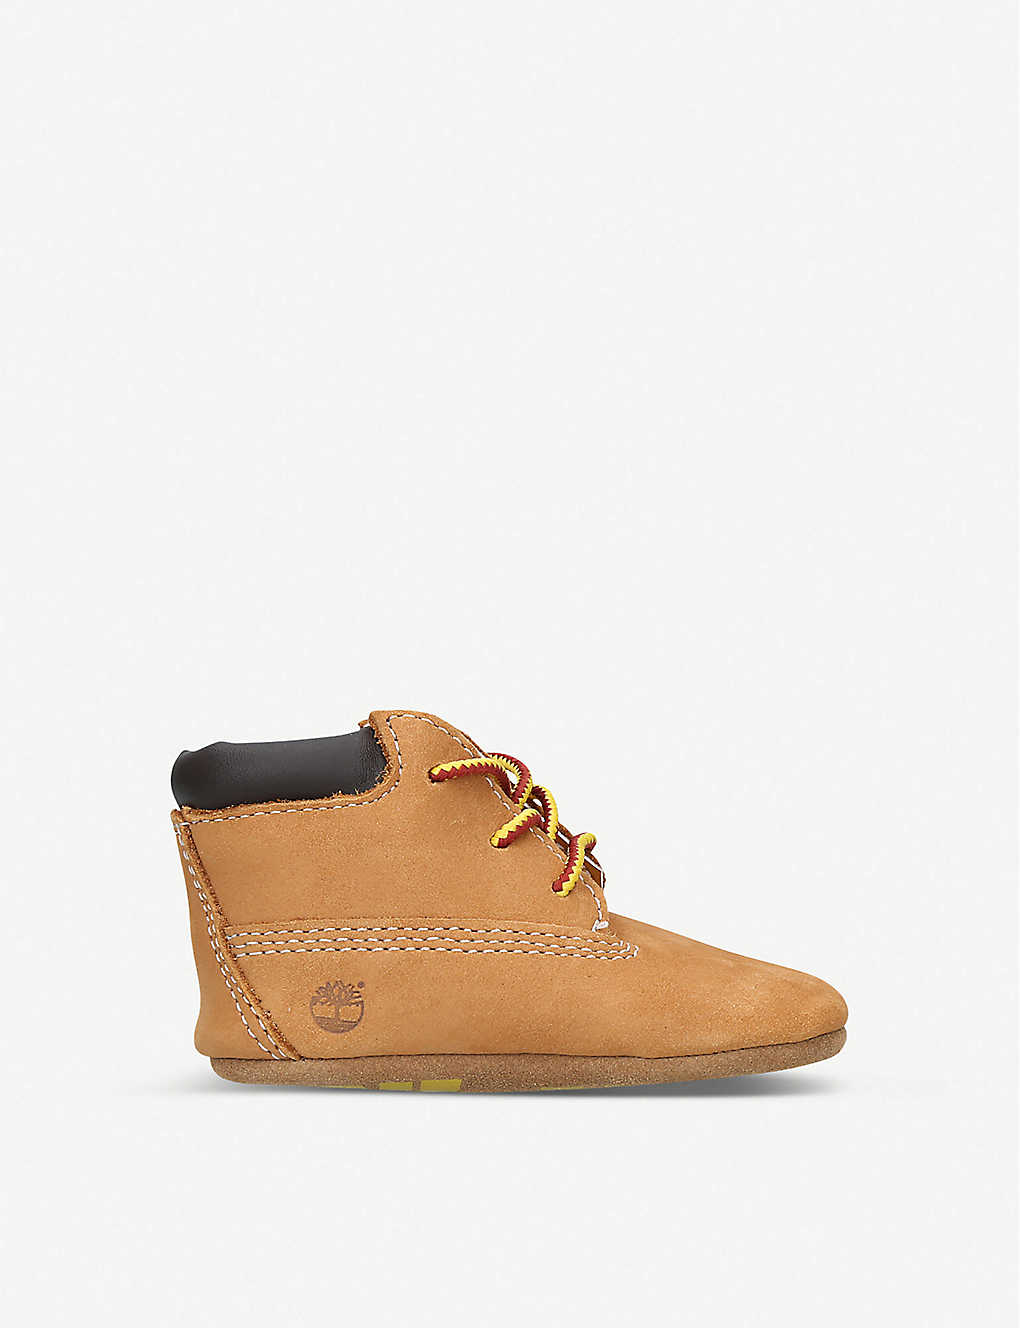 TIMBERLAND: Crib suede booties 0-6 months